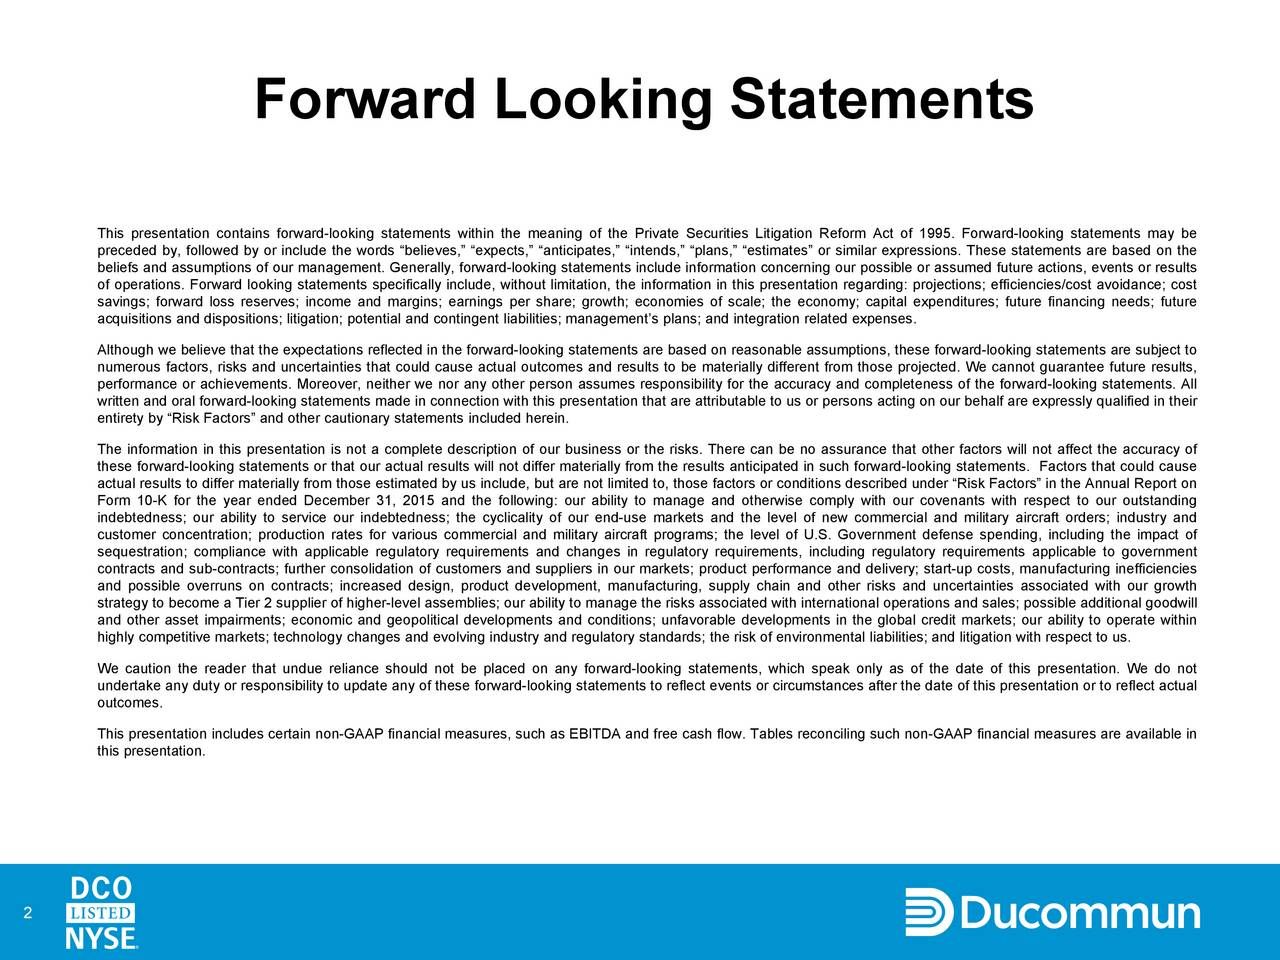 This presentation contains forward-looking statements within the meaning of the Private Securities Litigation Reform Act of 1995. Forward-looking statements may be preceded by, followed by or include the words believes, expects, anticipates, intends, plans, estimates or similar expressions. These statements are based on the beliefs and assumptions of our management. Generally, forward-looking statements include information concerning our possible or assumed future actions, events or results of operations. Forward looking statements specifically include, without limitation, the information in this presentation regarding: projections; efficiencies/cost avoidance; cost savings; forward loss reserves; income and margins; earnings per share; growth; economies of scale; the economy; capital expenditures; future financing needs; future acquisitions and dispositions; litigation; potential and contingent liabilities; managements plans; and integration related expenses. Although we believe that the expectations reflected in the forward-looking statements are based on reasonable assumptions, these forward-looking statements are subject to numerous factors, risks and uncertainties that could cause actual outcomes and results to be materially different from those projected. We cannot guarantee future results, performance or achievements. Moreover, neither we nor any other person assumes responsibility for the accuracy and completeness of the forward-looking statements. All written and oral forward-looking statements made in connection with this presentation that are attributable to us or persons acting on our behalf are expressly qualified in their entirety by Risk Factors and other cautionary statements included herein. The information in this presentation is not a complete description of our business or the risks. There can be no assurance that other factors will not affect the accuracy of these forward-looking statements or that our actual results will not differ materially from the results anticipated in such forward-looking statements. Factors that could cause actual results to differ materially from those estimated by us include, but are not limited to, those factors or conditions described under Risk Factors in the Annual Report on Form 10-K for the year ended December 31, 2015 and the following: our ability to manage and otherwise comply with our covenants with respect to our outstanding indebtedness; our ability to service our indebtedness; the cyclicality of our end-use markets and the level of new commercial and military aircraft orders; industry and customer concentration; production rates for various commercial and military aircraft programs; the level of U.S. Government defense spending, including the impact of sequestration; compliance with applicable regulatory requirements and changes in regulatory requirements, including regulatory requirements applicable to government contracts and sub-contracts; further consolidation of customers and suppliers in our markets; product performance and delivery; start-up costs, manufacturing inefficiencies and possible overruns on contracts; increased design, product development, manufacturing, supply chain and other risks and uncertainties associated with our growth strategy to become a Tier 2 supplier of higher-level assemblies; our ability to manage the risks associated with international operations and sales; possible additional goodwill and other asset impairments; economic and geopolitical developments and conditions; unfavorable developments in the global credit markets; our ability to operate within highly competitive markets; technology changes and evolving industry and regulatory standards; the risk of environmental liabilities; and litigation with respect to us. We caution the reader that undue reliance should not be placed on any forward-looking statements, which speak only as of the date of this presentation. We do not undertake any duty or responsibility to update any of these forward-looking statements to reflect events or circumstances after the date of this presentation or to reflect actual outcomes. This presentation includes certain non-GAAP financial measures, such as EBITDA and free cash flow. Tables reconciling such non-GAAP financial measures are available in this presentation. 2